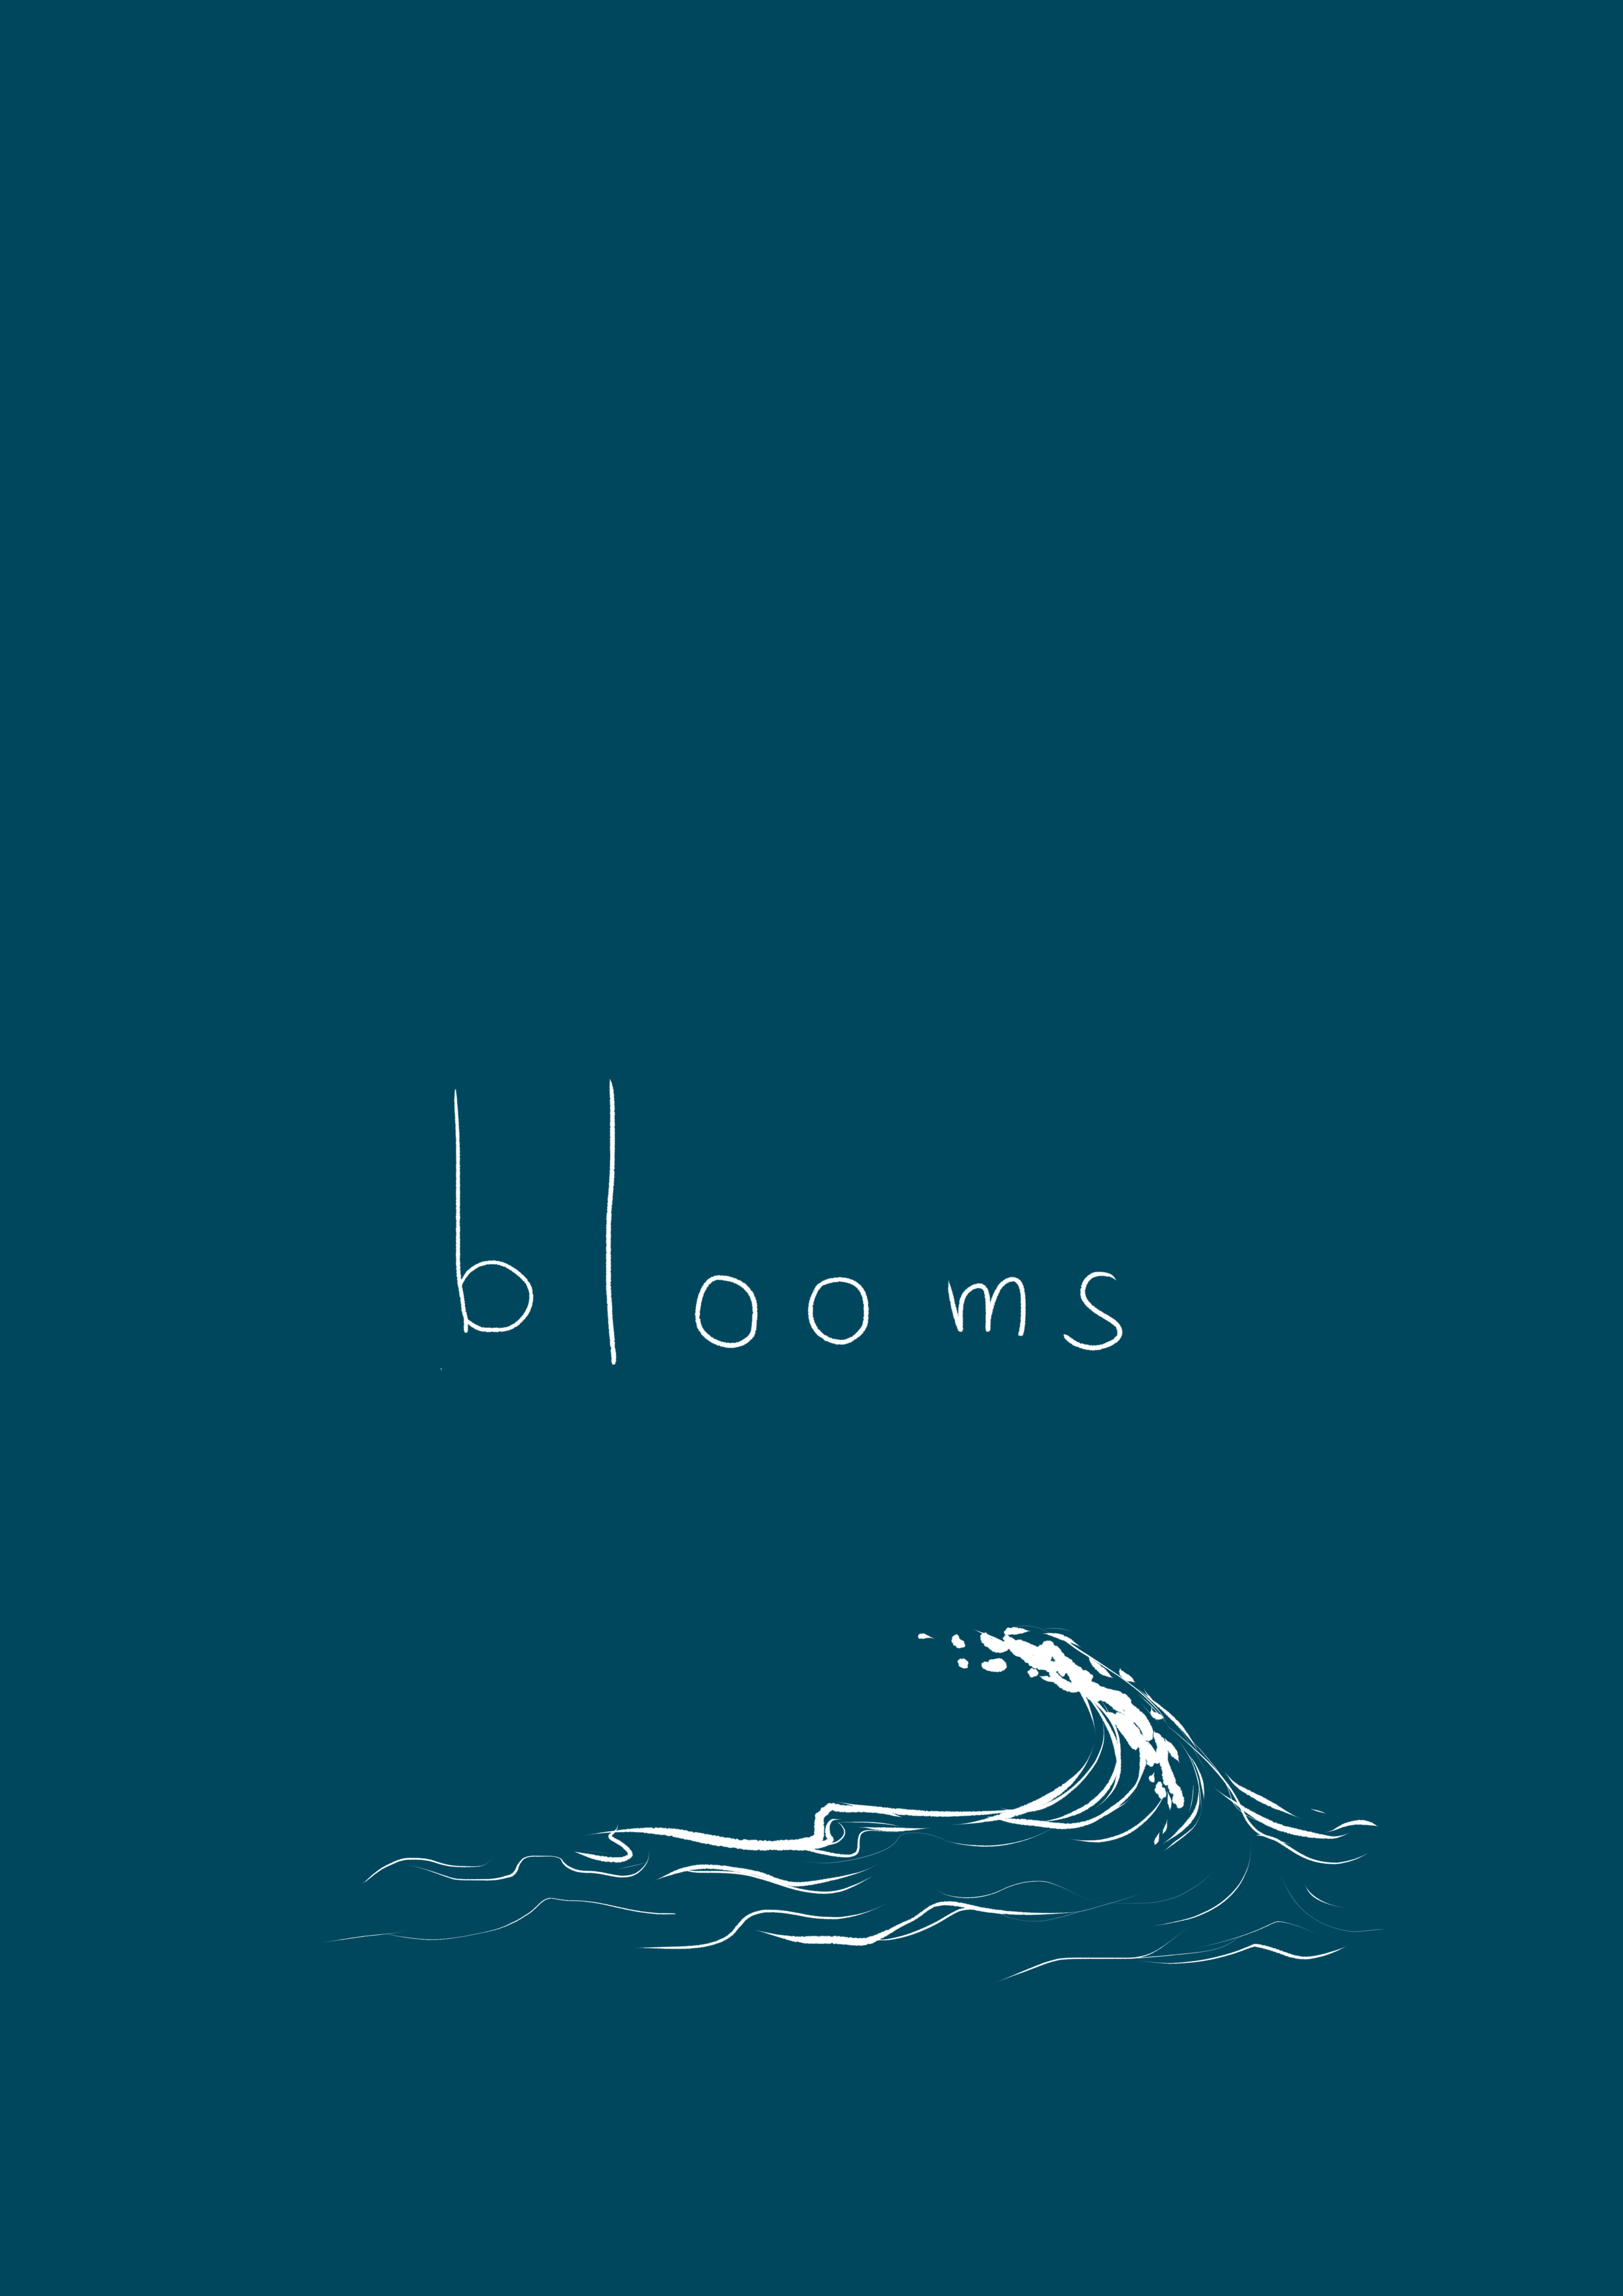 blooms 1.png